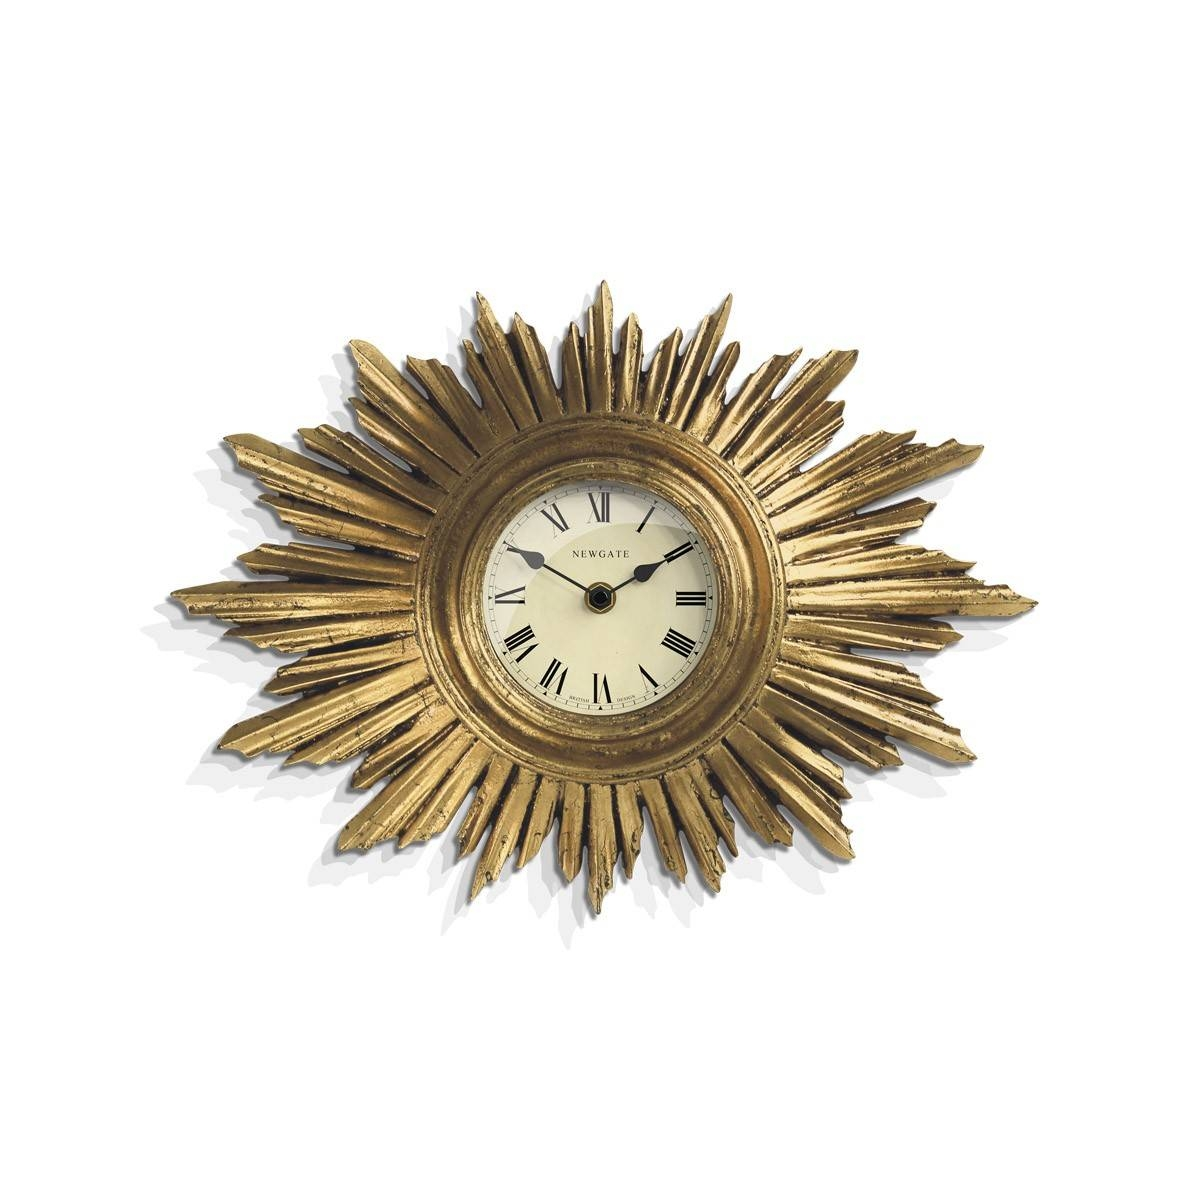 Gold Sunburst Art Deco Wall Clock | Newgate Clocks | Sunburst With Most Up To Date Art Deco Wall Clocks (View 19 of 25)